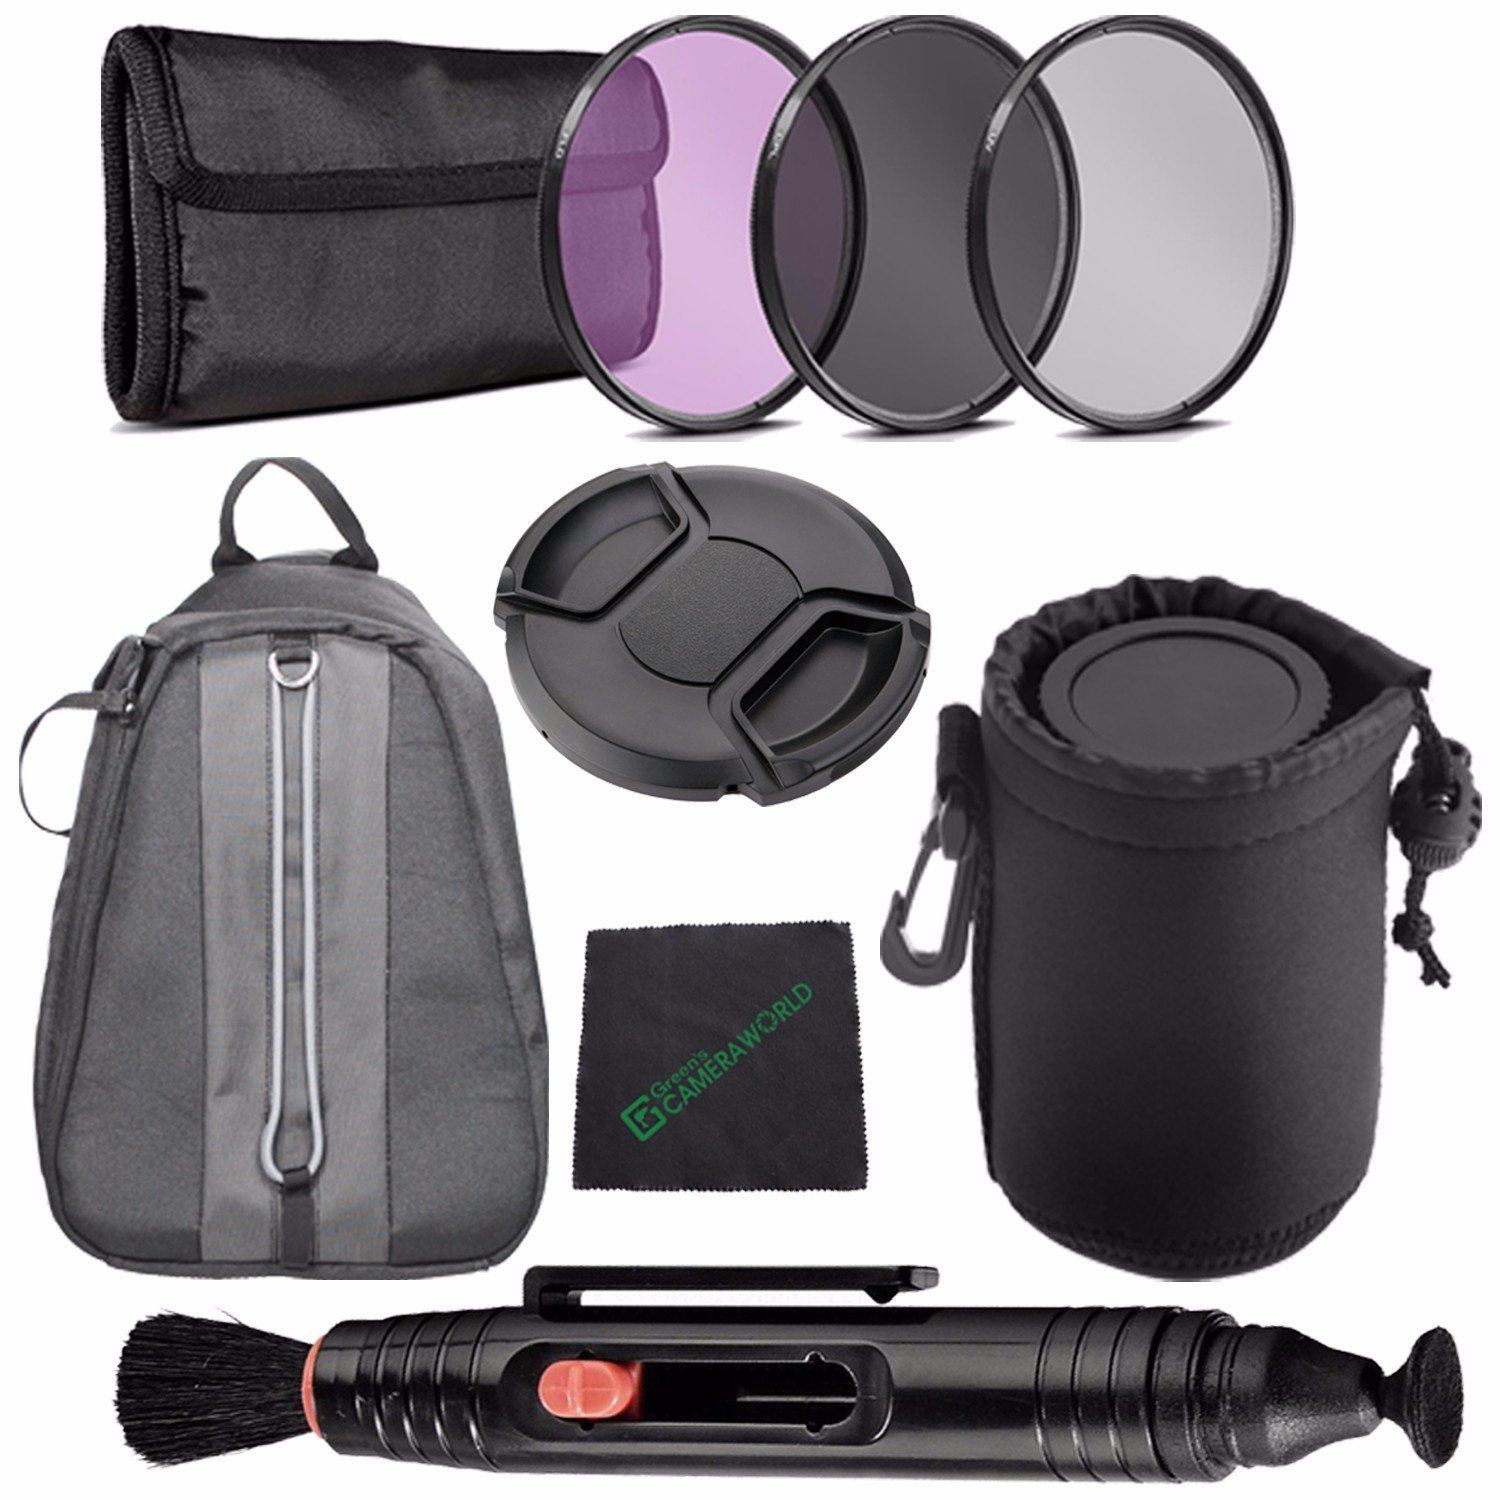 Buy Precision Design Camera Mini Sling Backpackcleaning Kit F